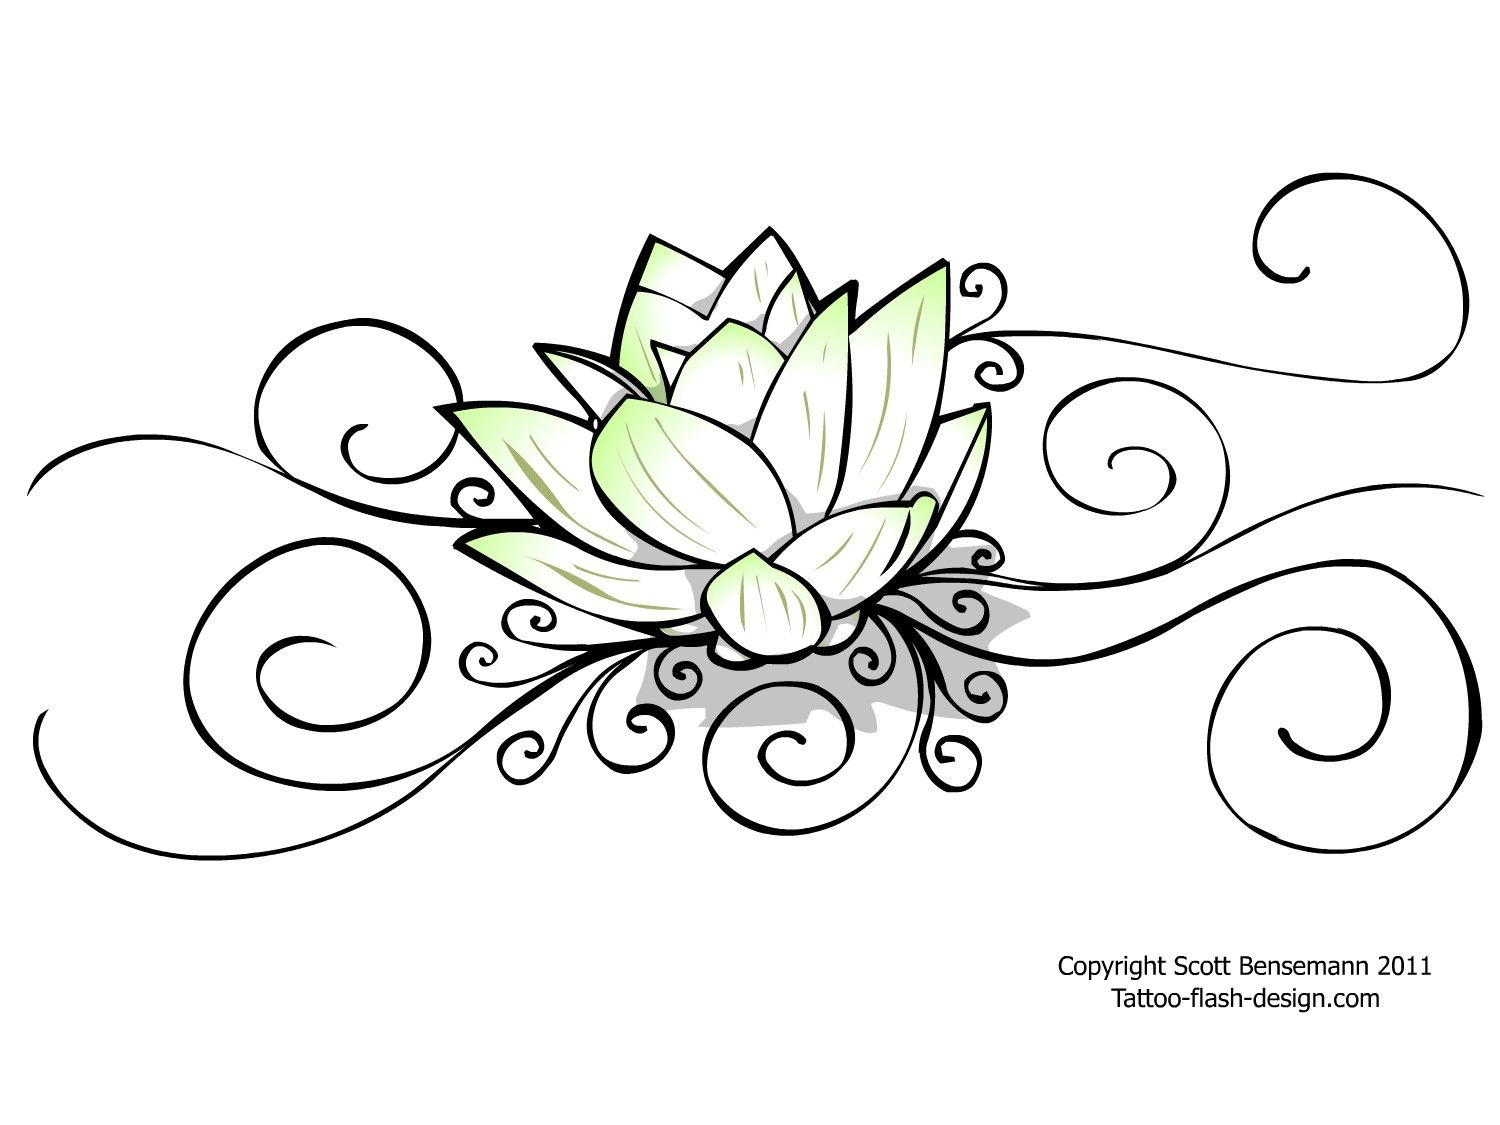 1500x1125 Small Lotus Flower Drawing Simple Lotus Flower Drawing Small Lotus